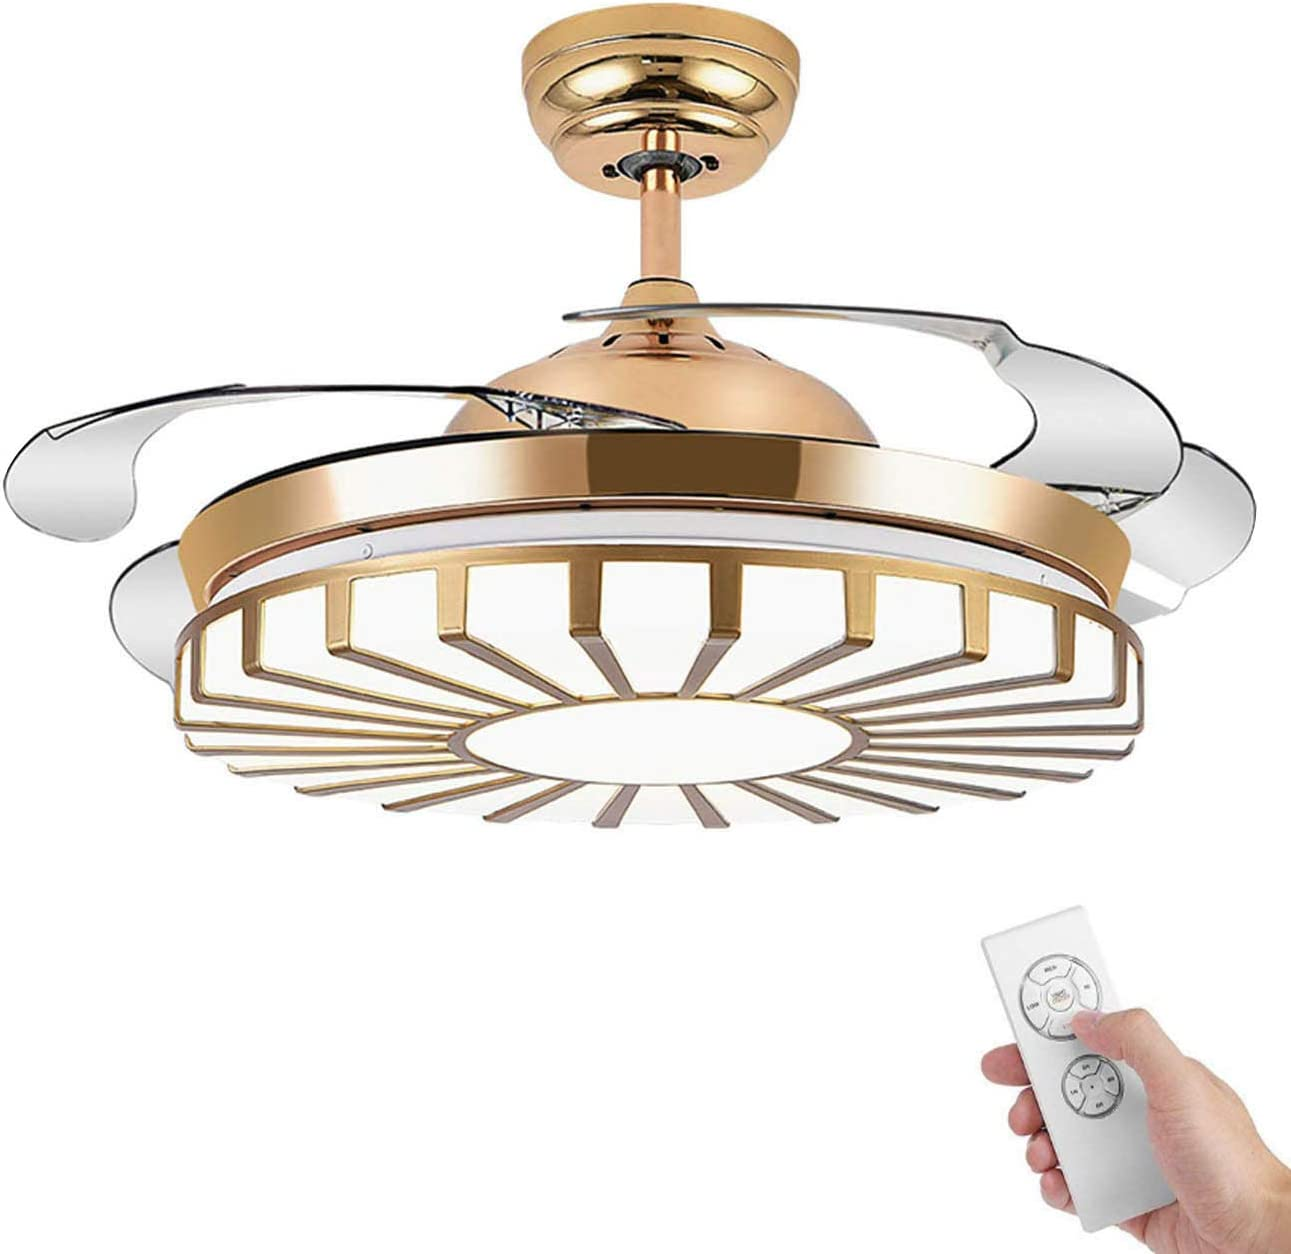 Booms Modern Invisible Ceiling Fan Light with Remote Control Ultra-quiet LED Outdoor Ceiling Fan 42 Inch Fan Chandelier Interior Decoration Living Room Bedroom Restaurant Cafe Golden